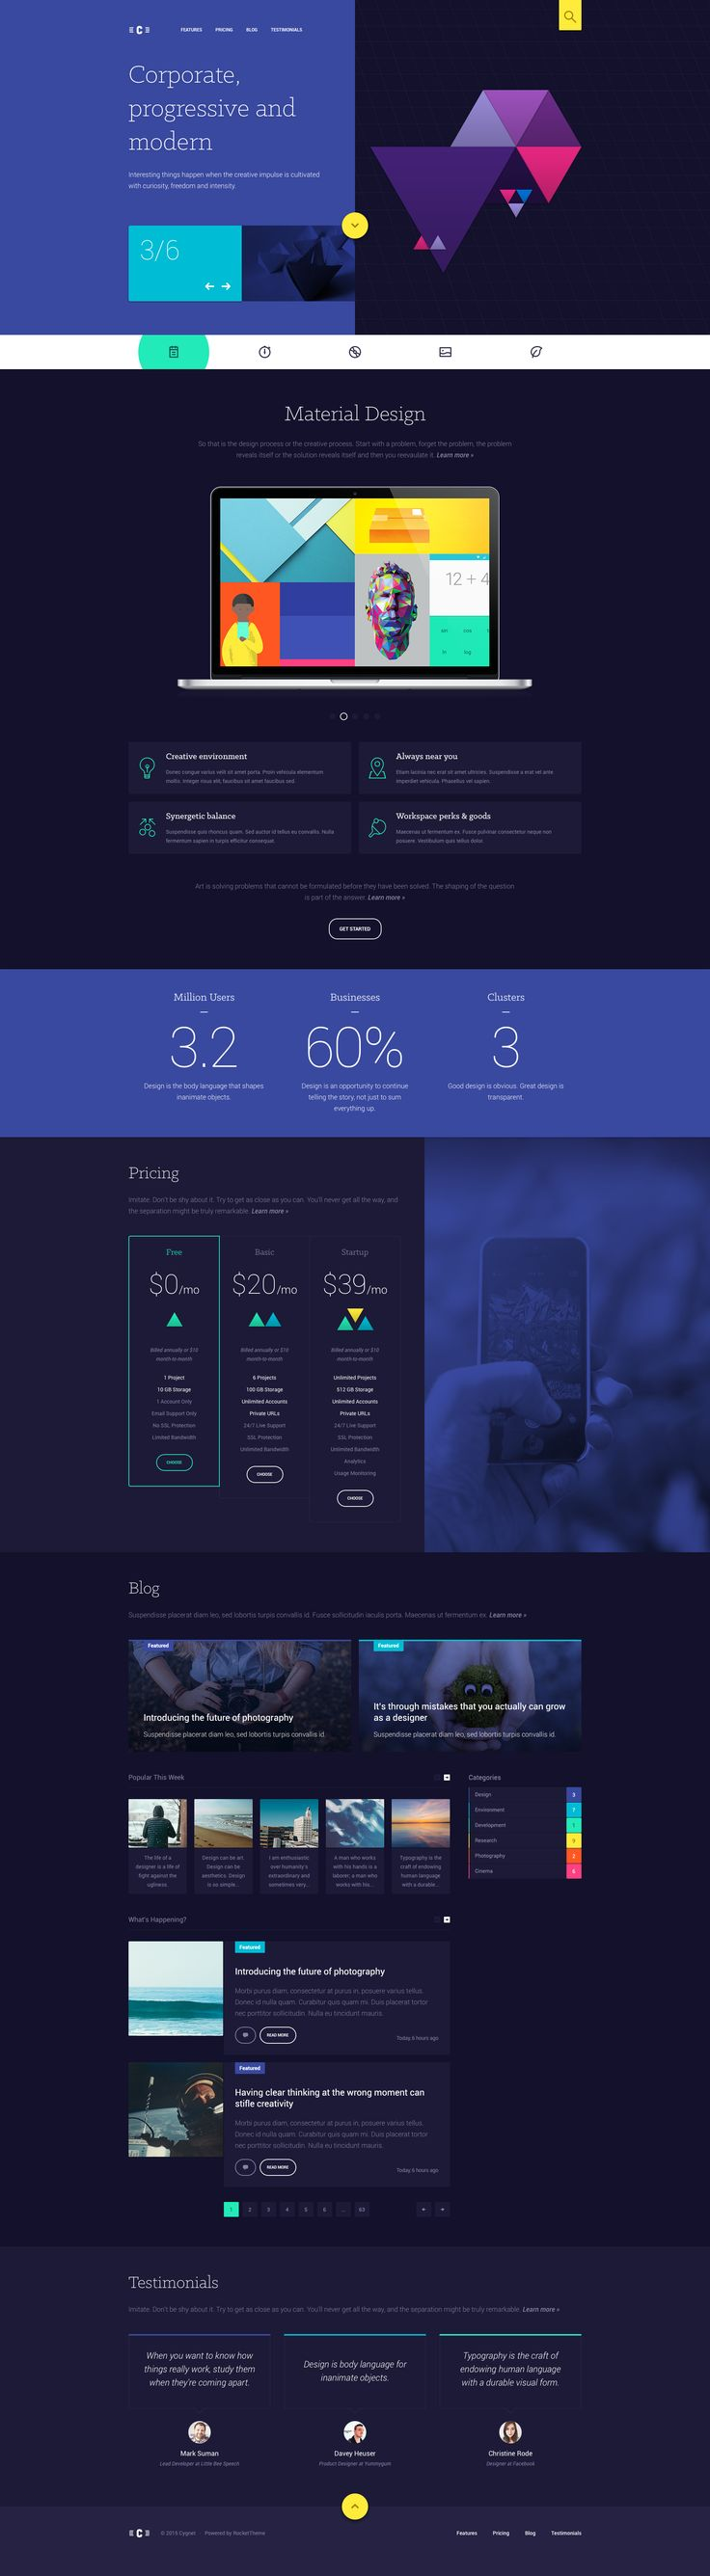 Cygnet, landing page, minimal, material design, colors, dark, typographic, photos, illustrations